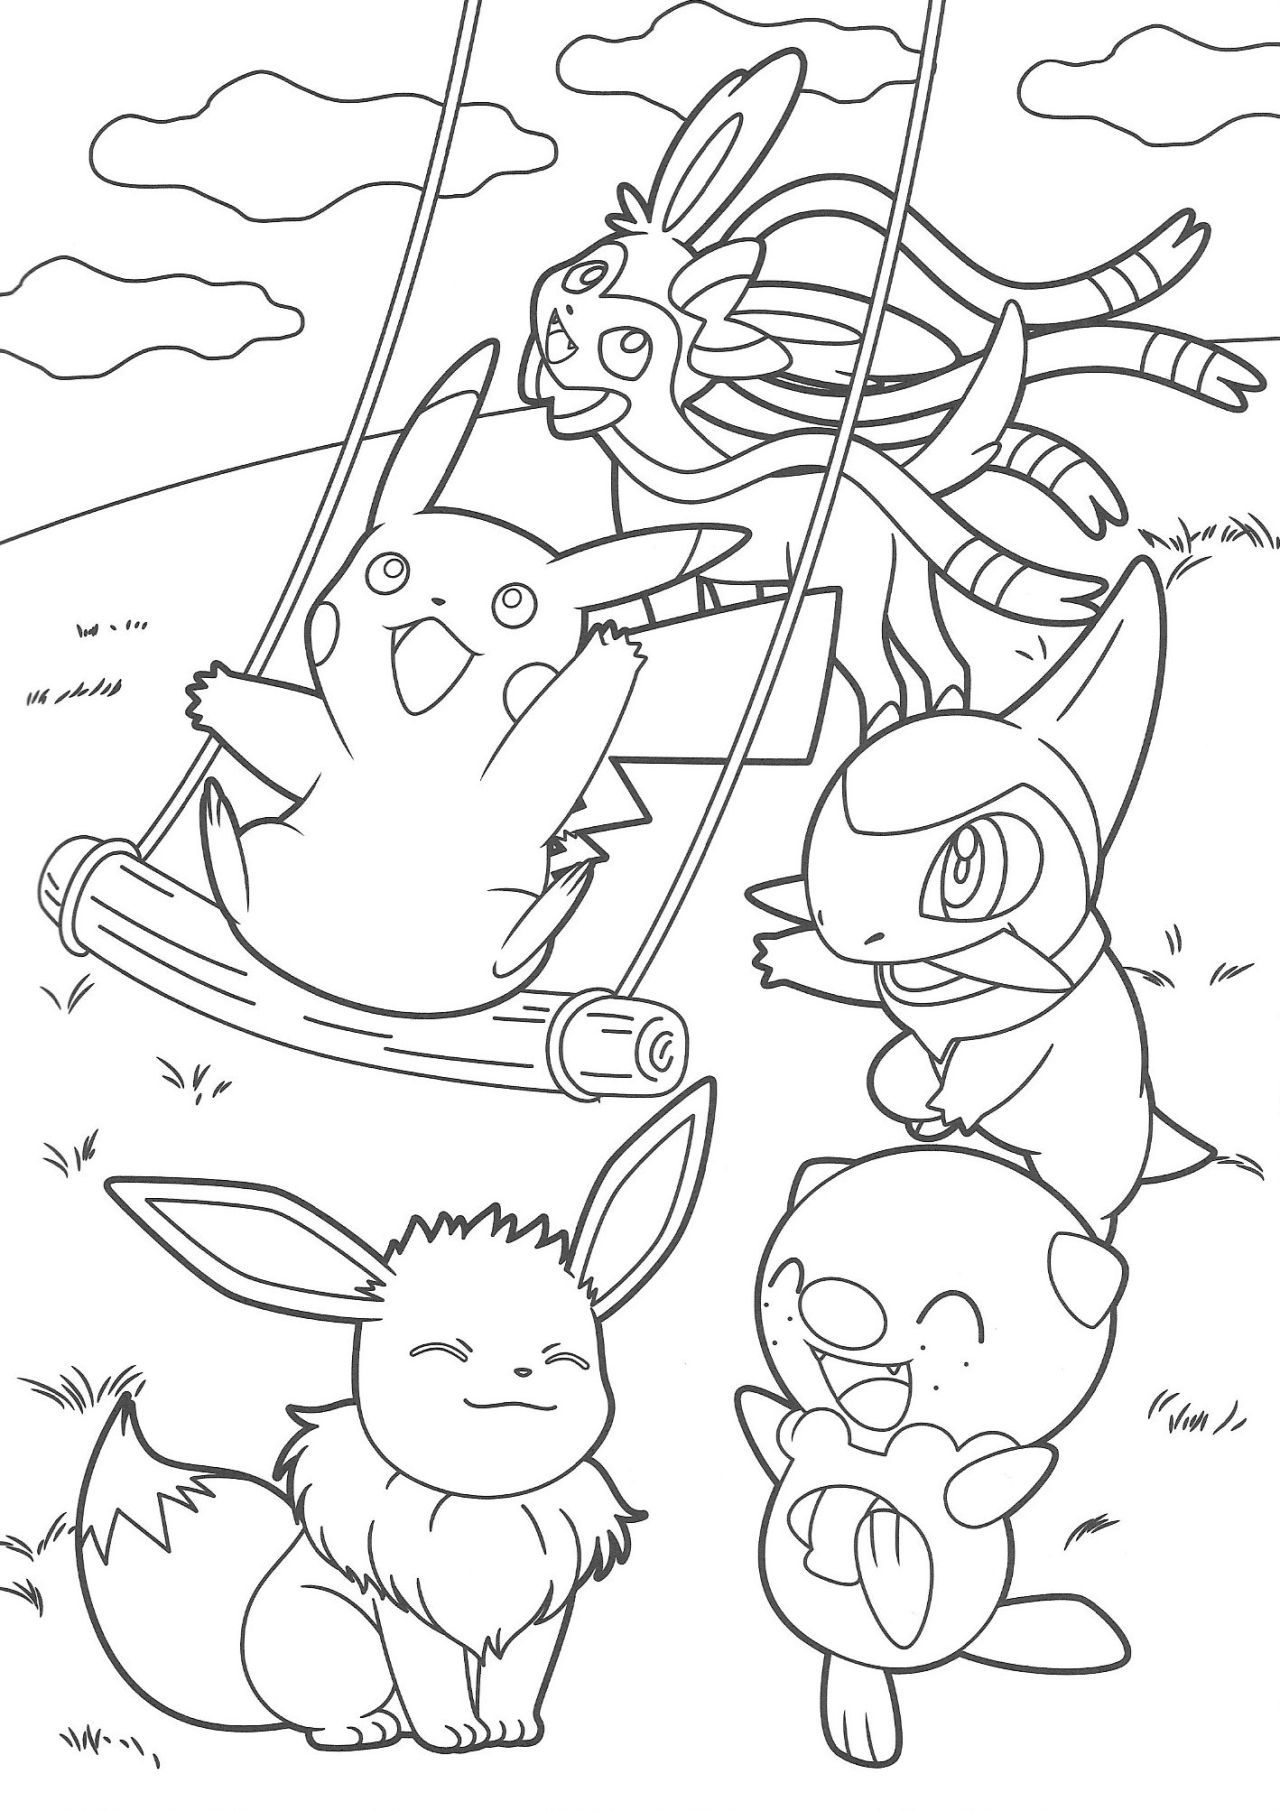 Pokemon Related Scans From Books And Merchandise Background By Zaiqukaj Off Of A Pokemon Time Clearfile 2009 2020 塗り絵 かわいい キャラクター 塗り絵 塗り絵 キャラクター